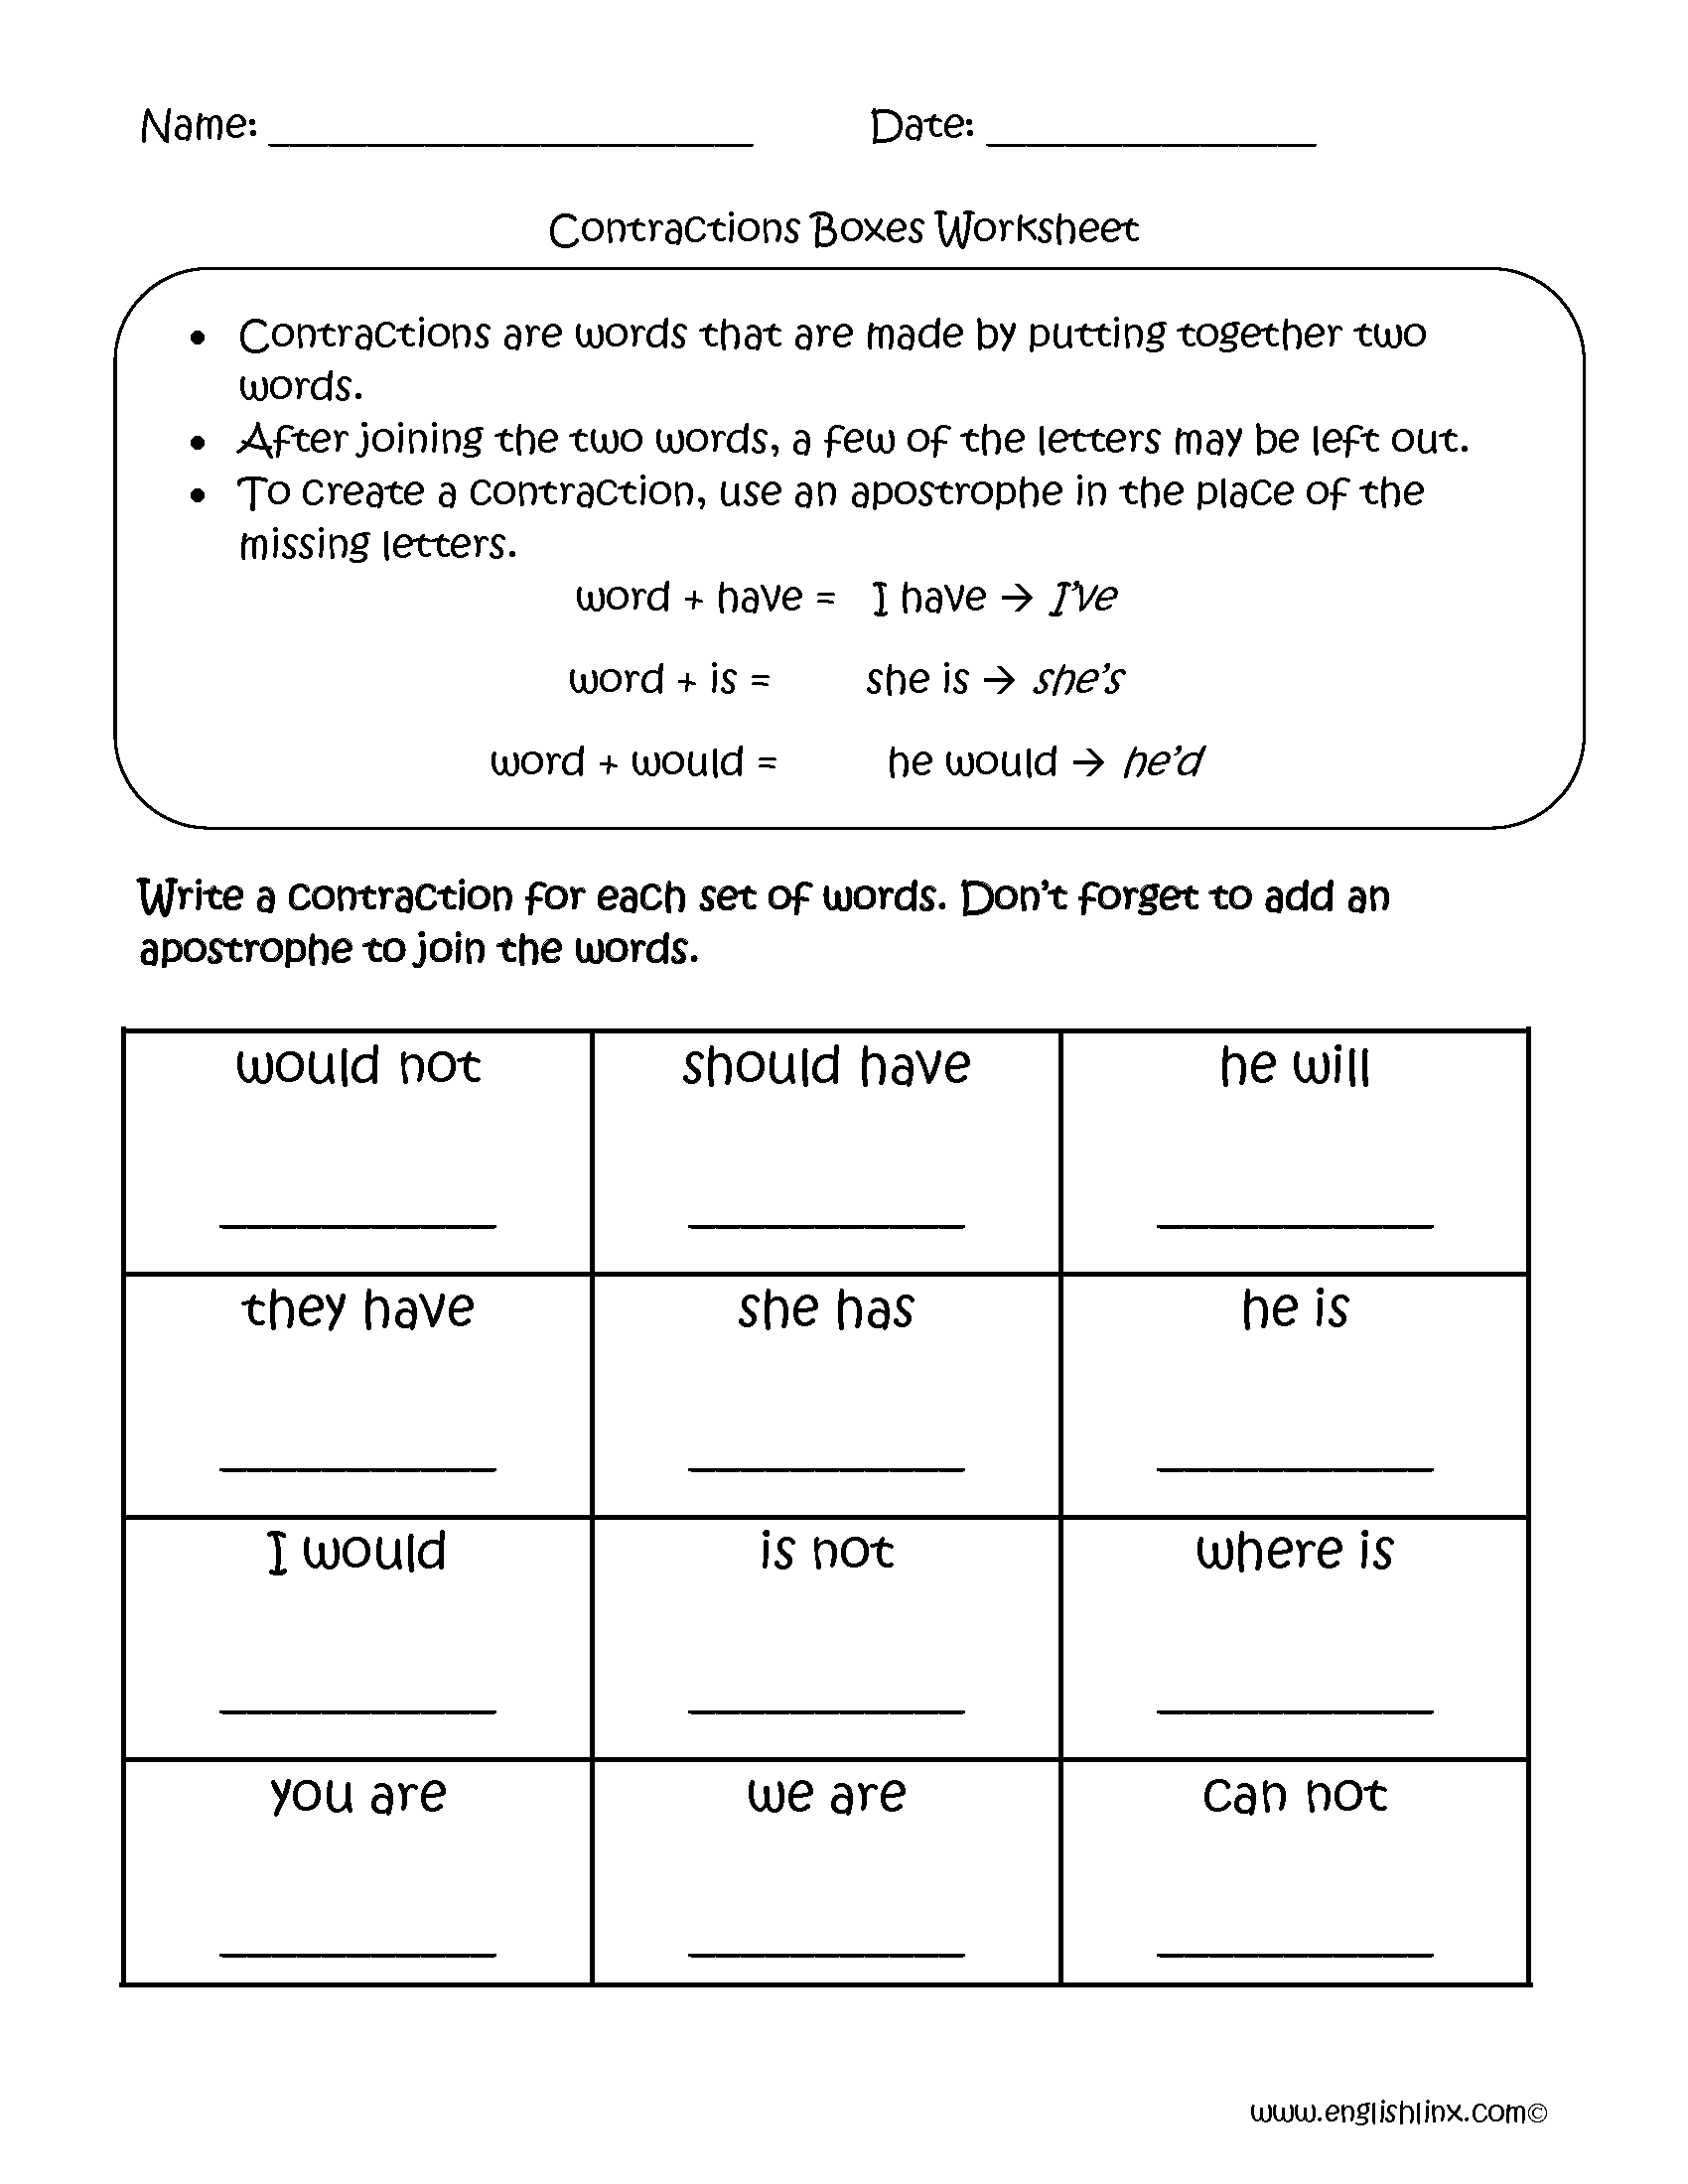 worksheet Contraction Worksheets For First Grade englishlinx com contractions worksheets boxes worksheets